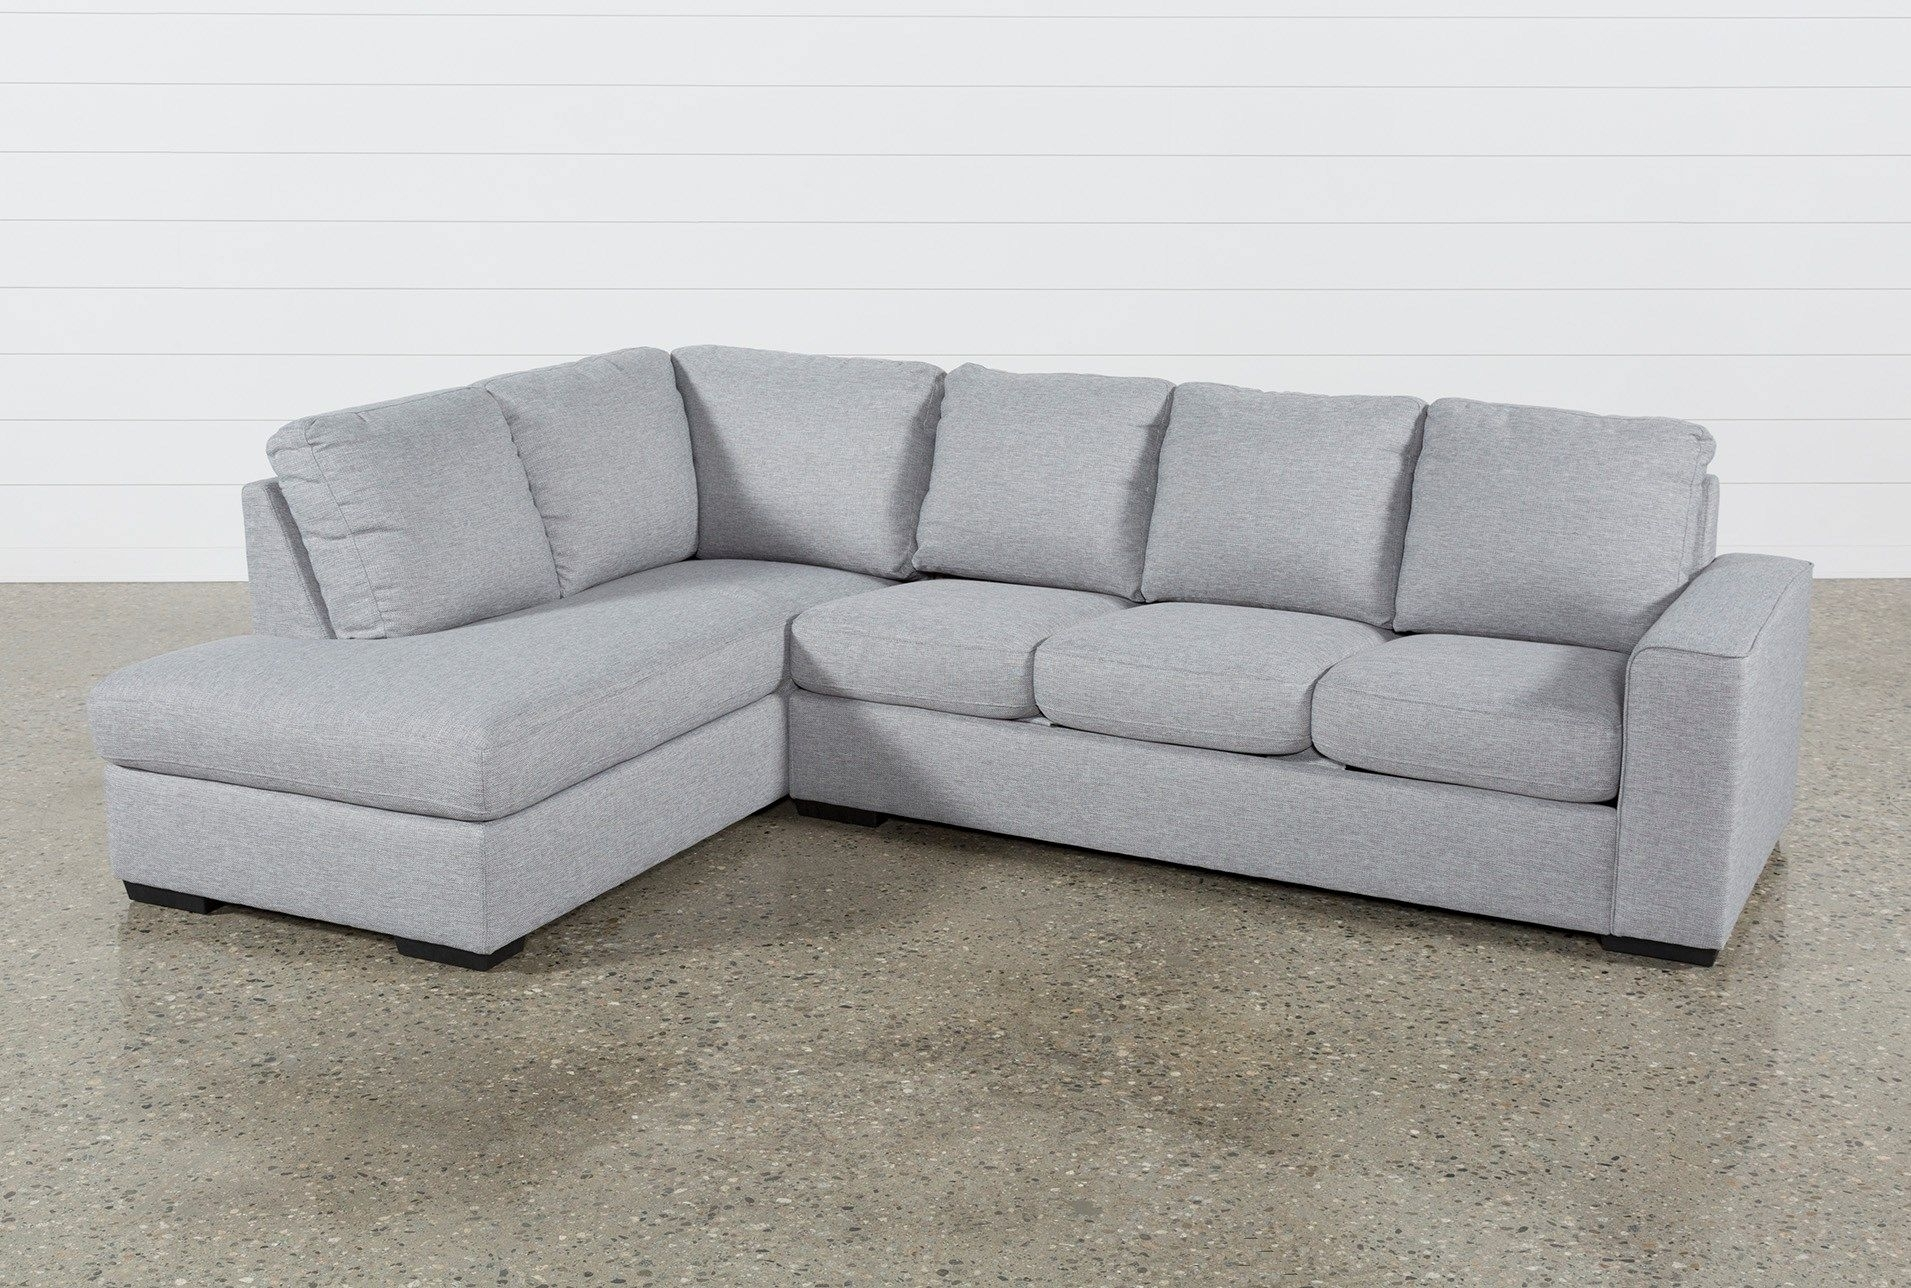 Lucy Grey 2 Piece Sectional W/laf Chaise | Tx House | Pinterest For Lucy Grey 2 Piece Sleeper Sectionals With Laf Chaise (View 2 of 25)